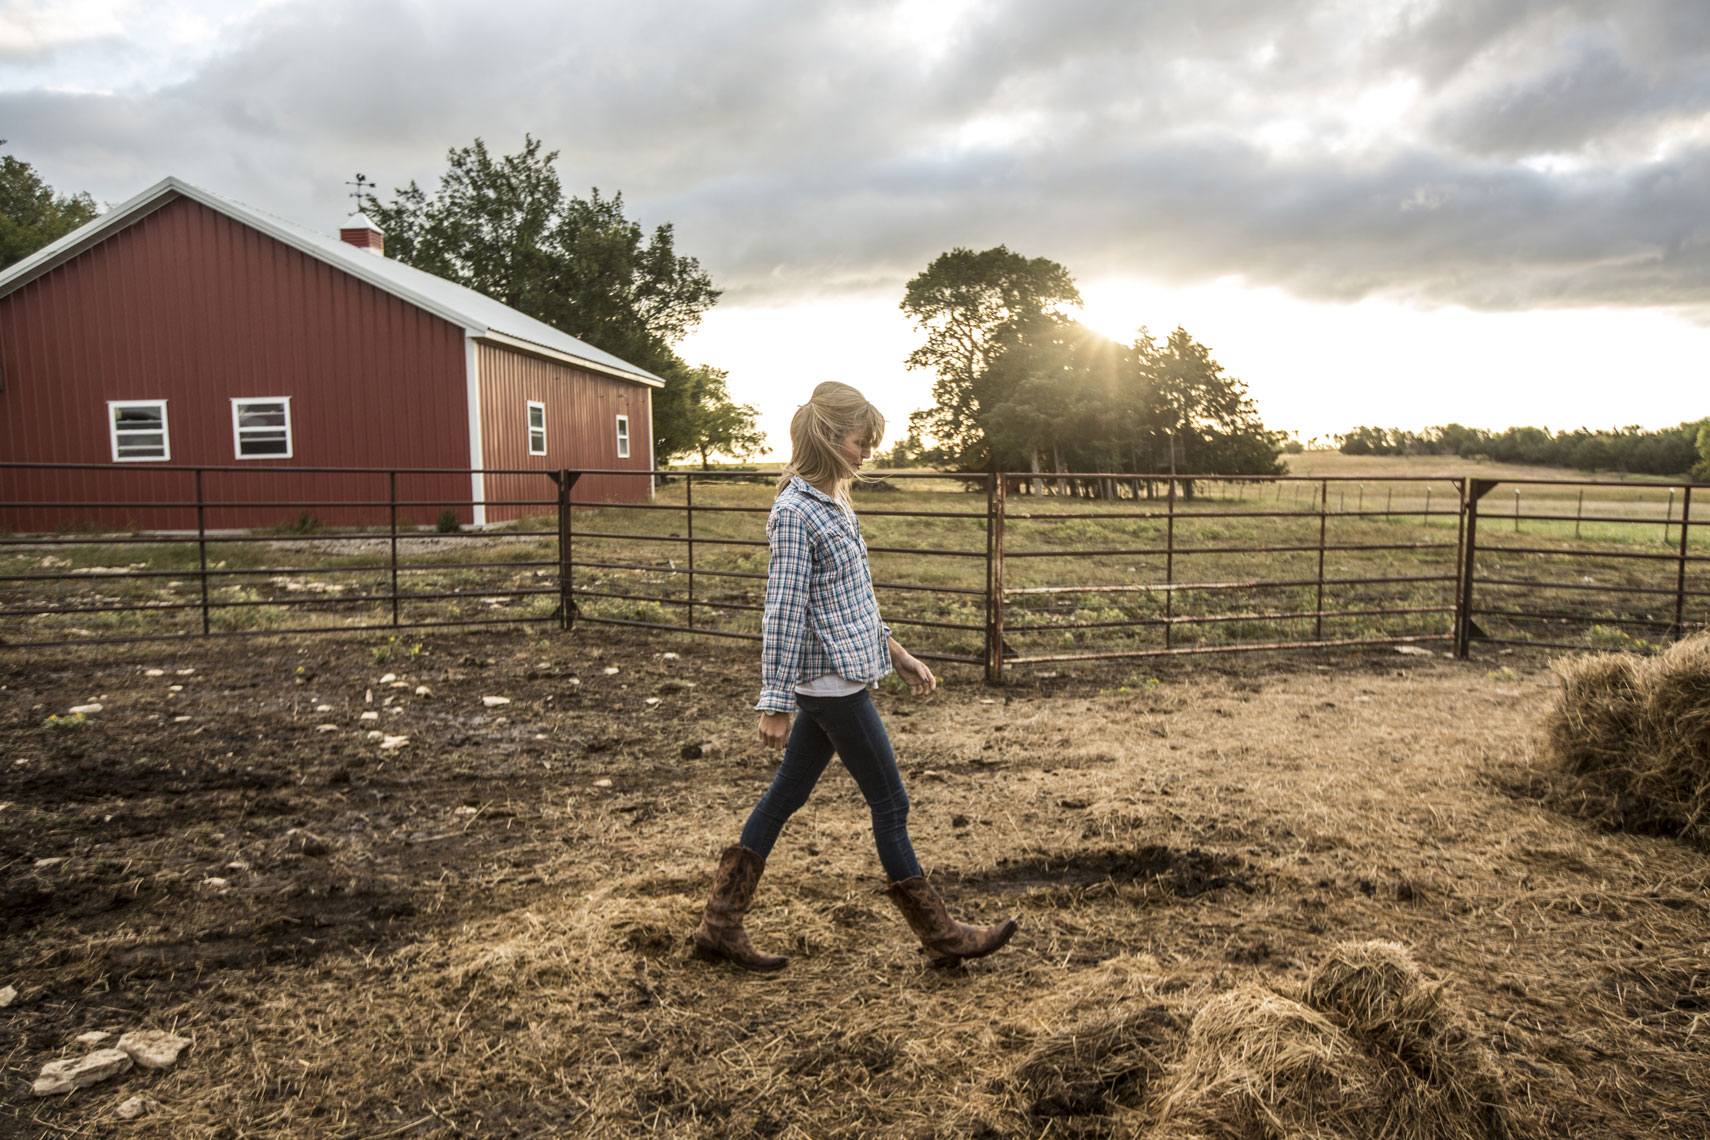 agrilculture-farm-photography-farmer-girl-walking